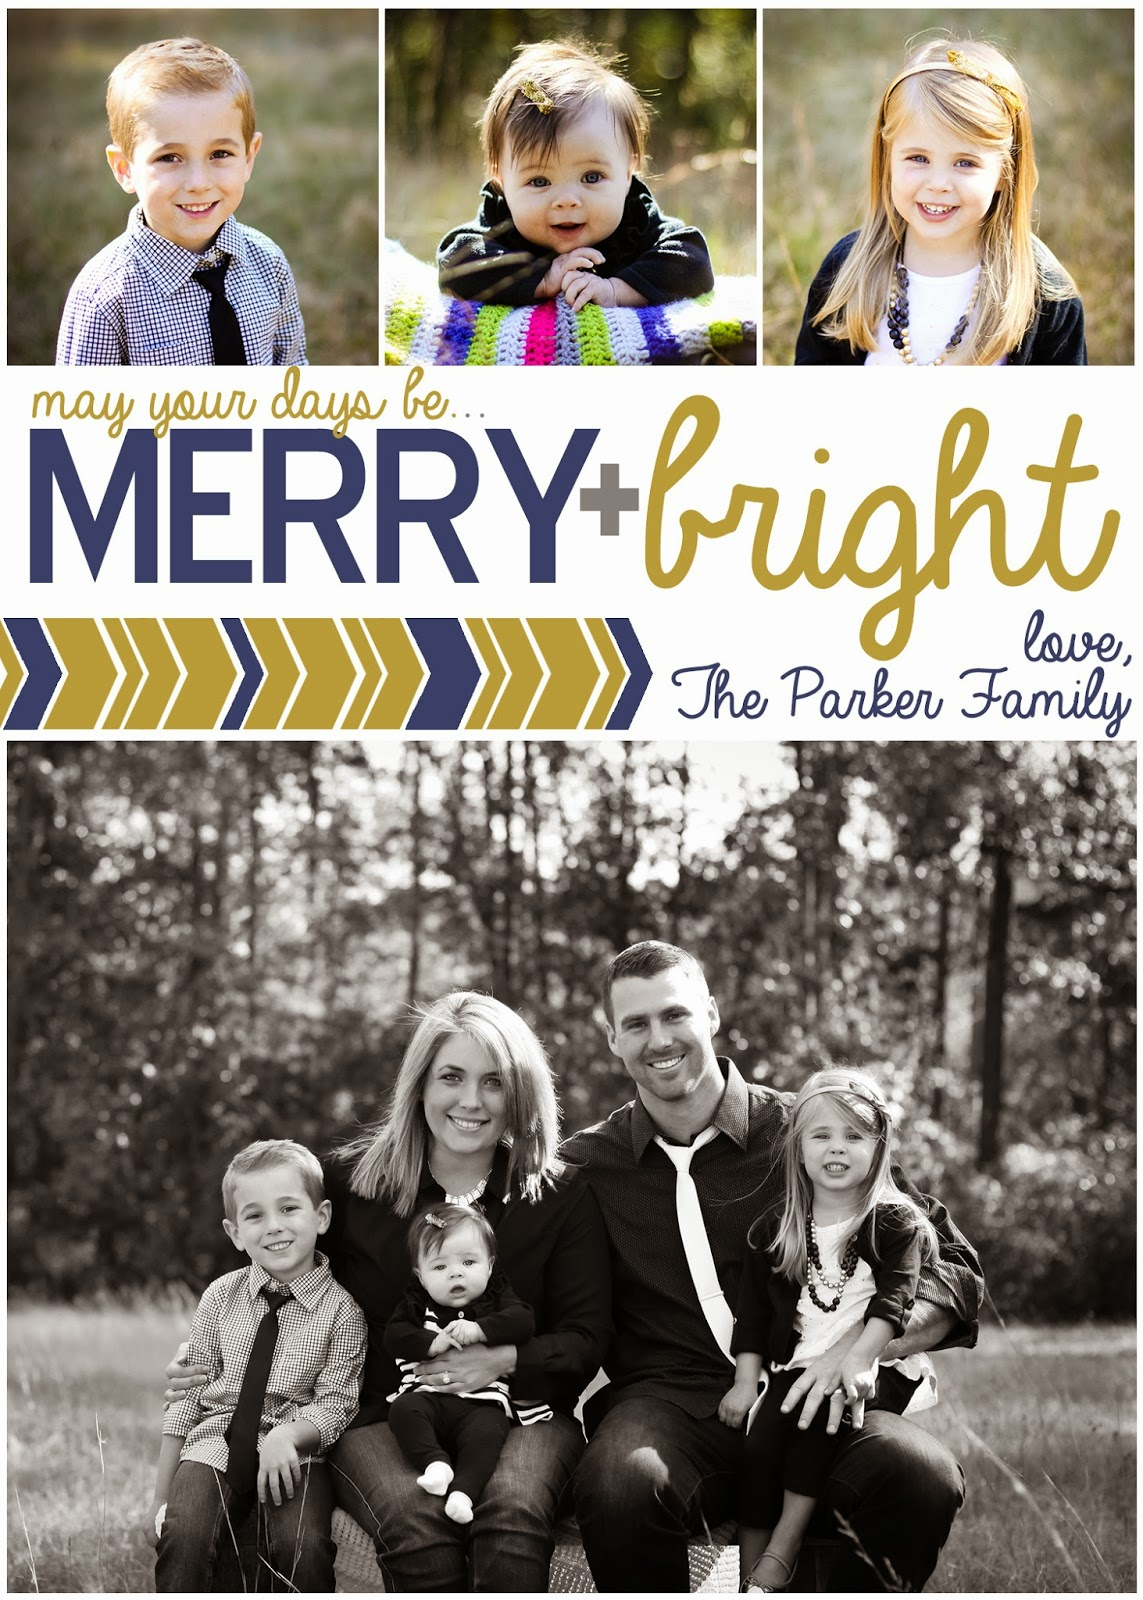 Christmas Card Roll Call 2014